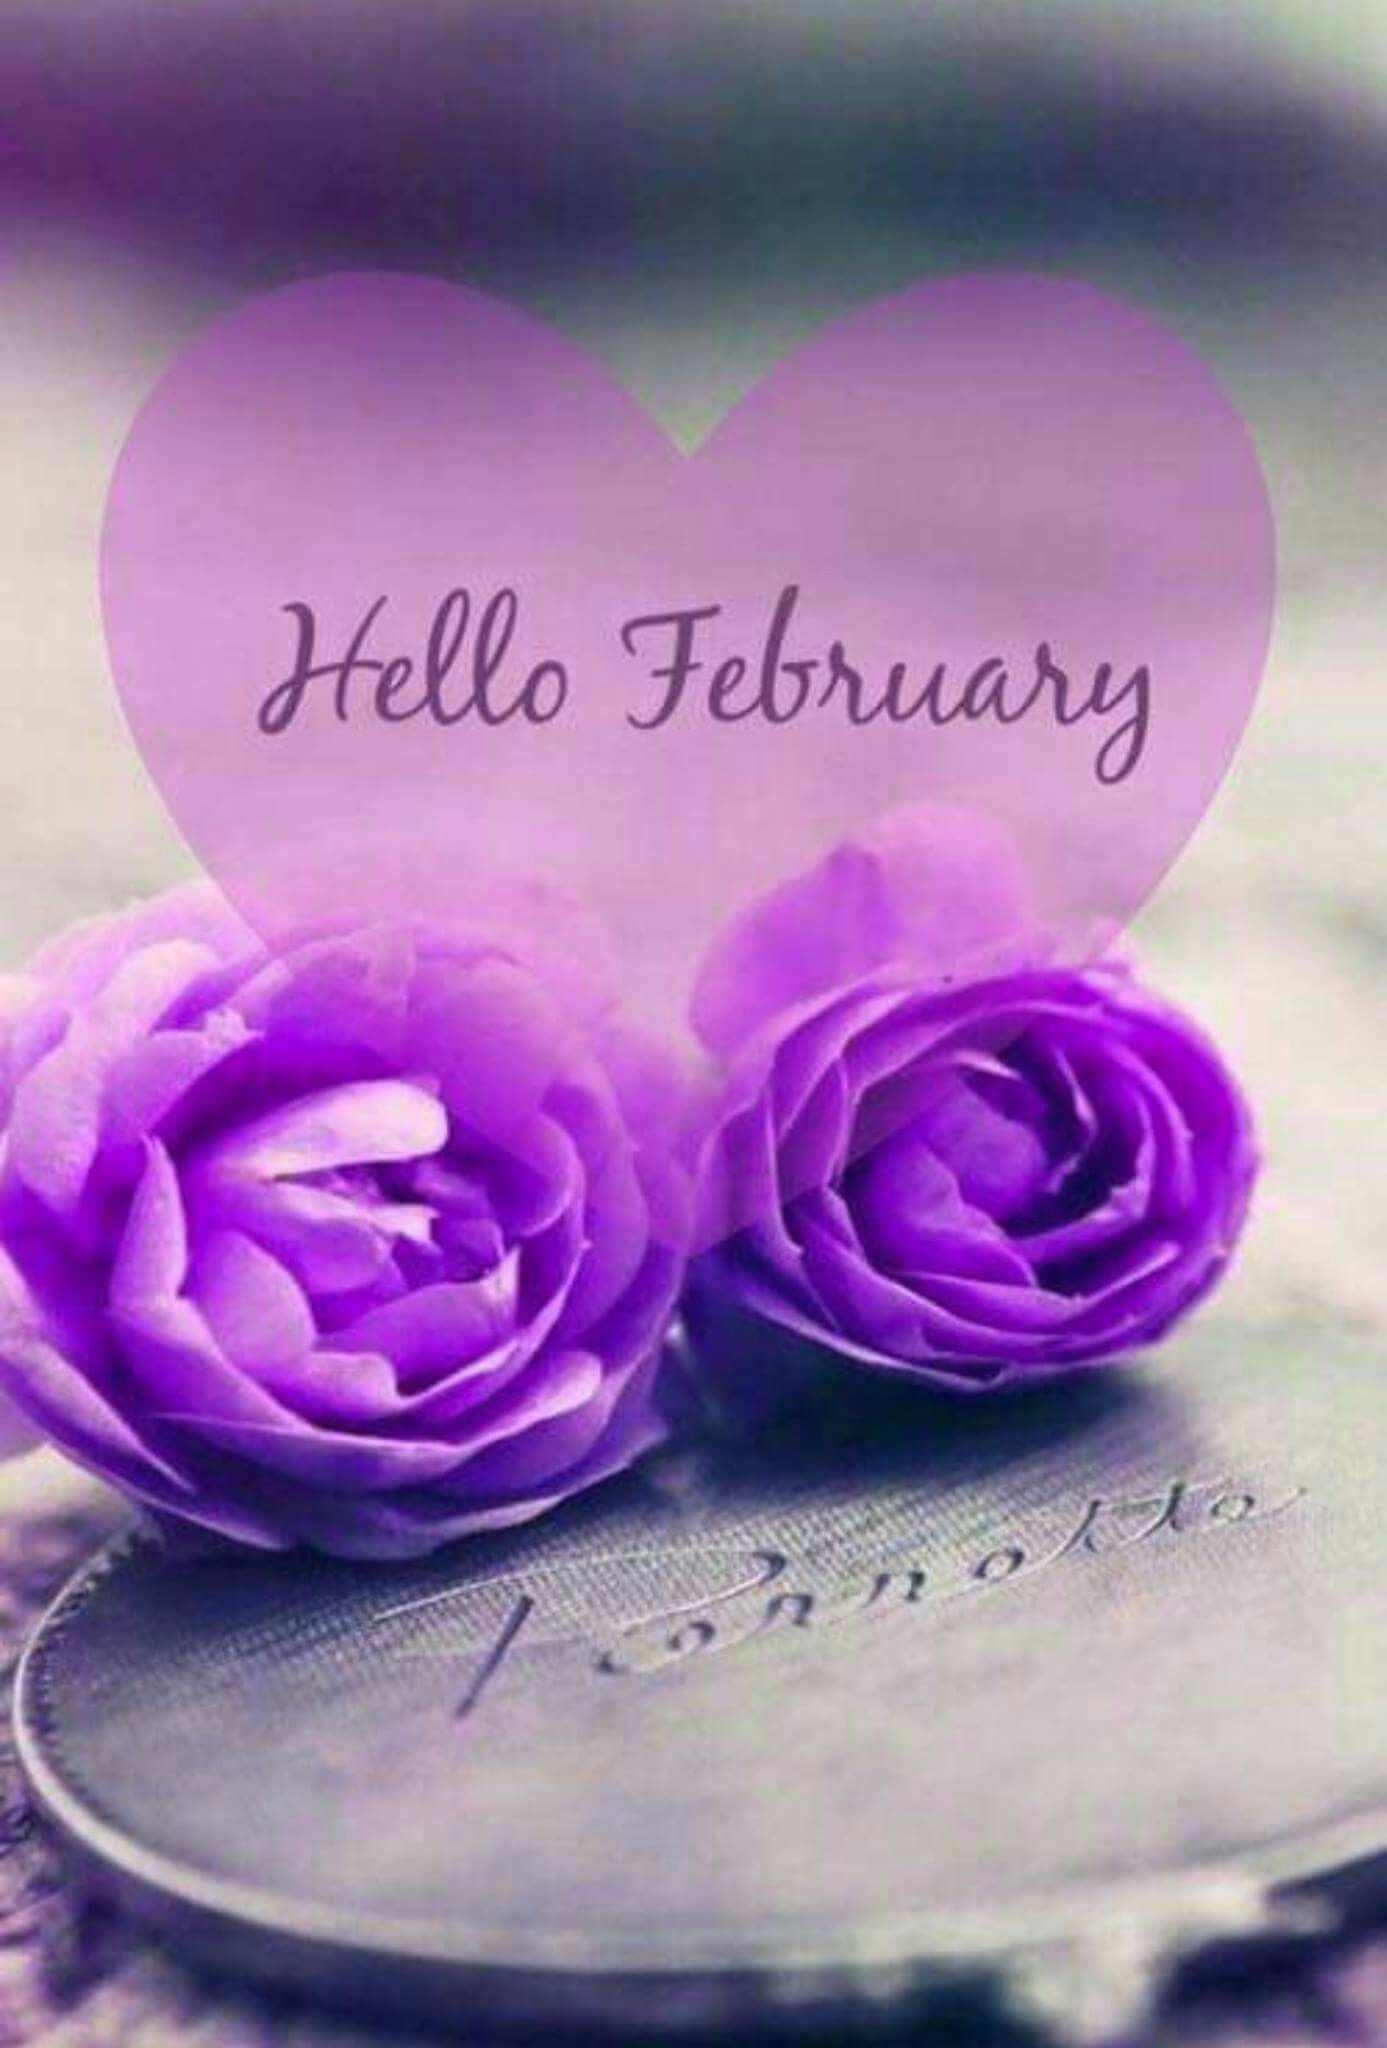 February Hunters Holidays February Quotes February Welcome